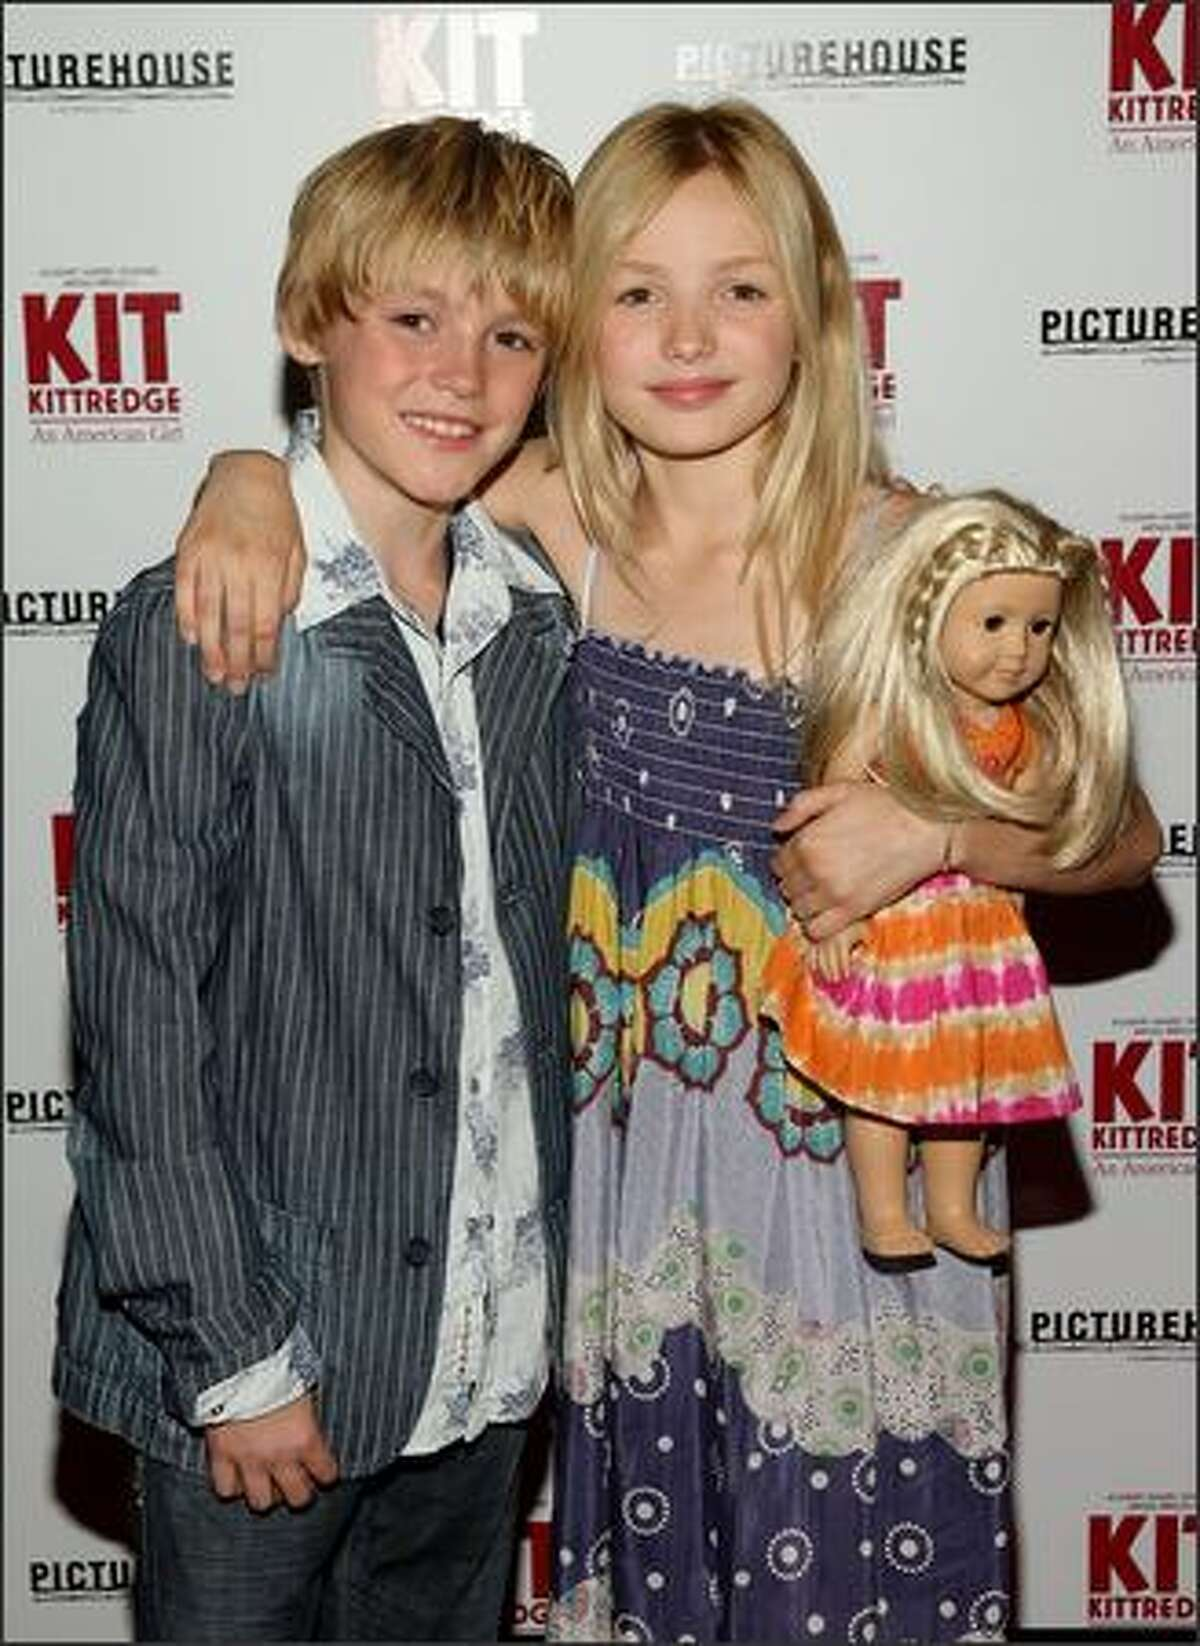 Actors and siblings Spencer List and Peyton List attend the premiere.